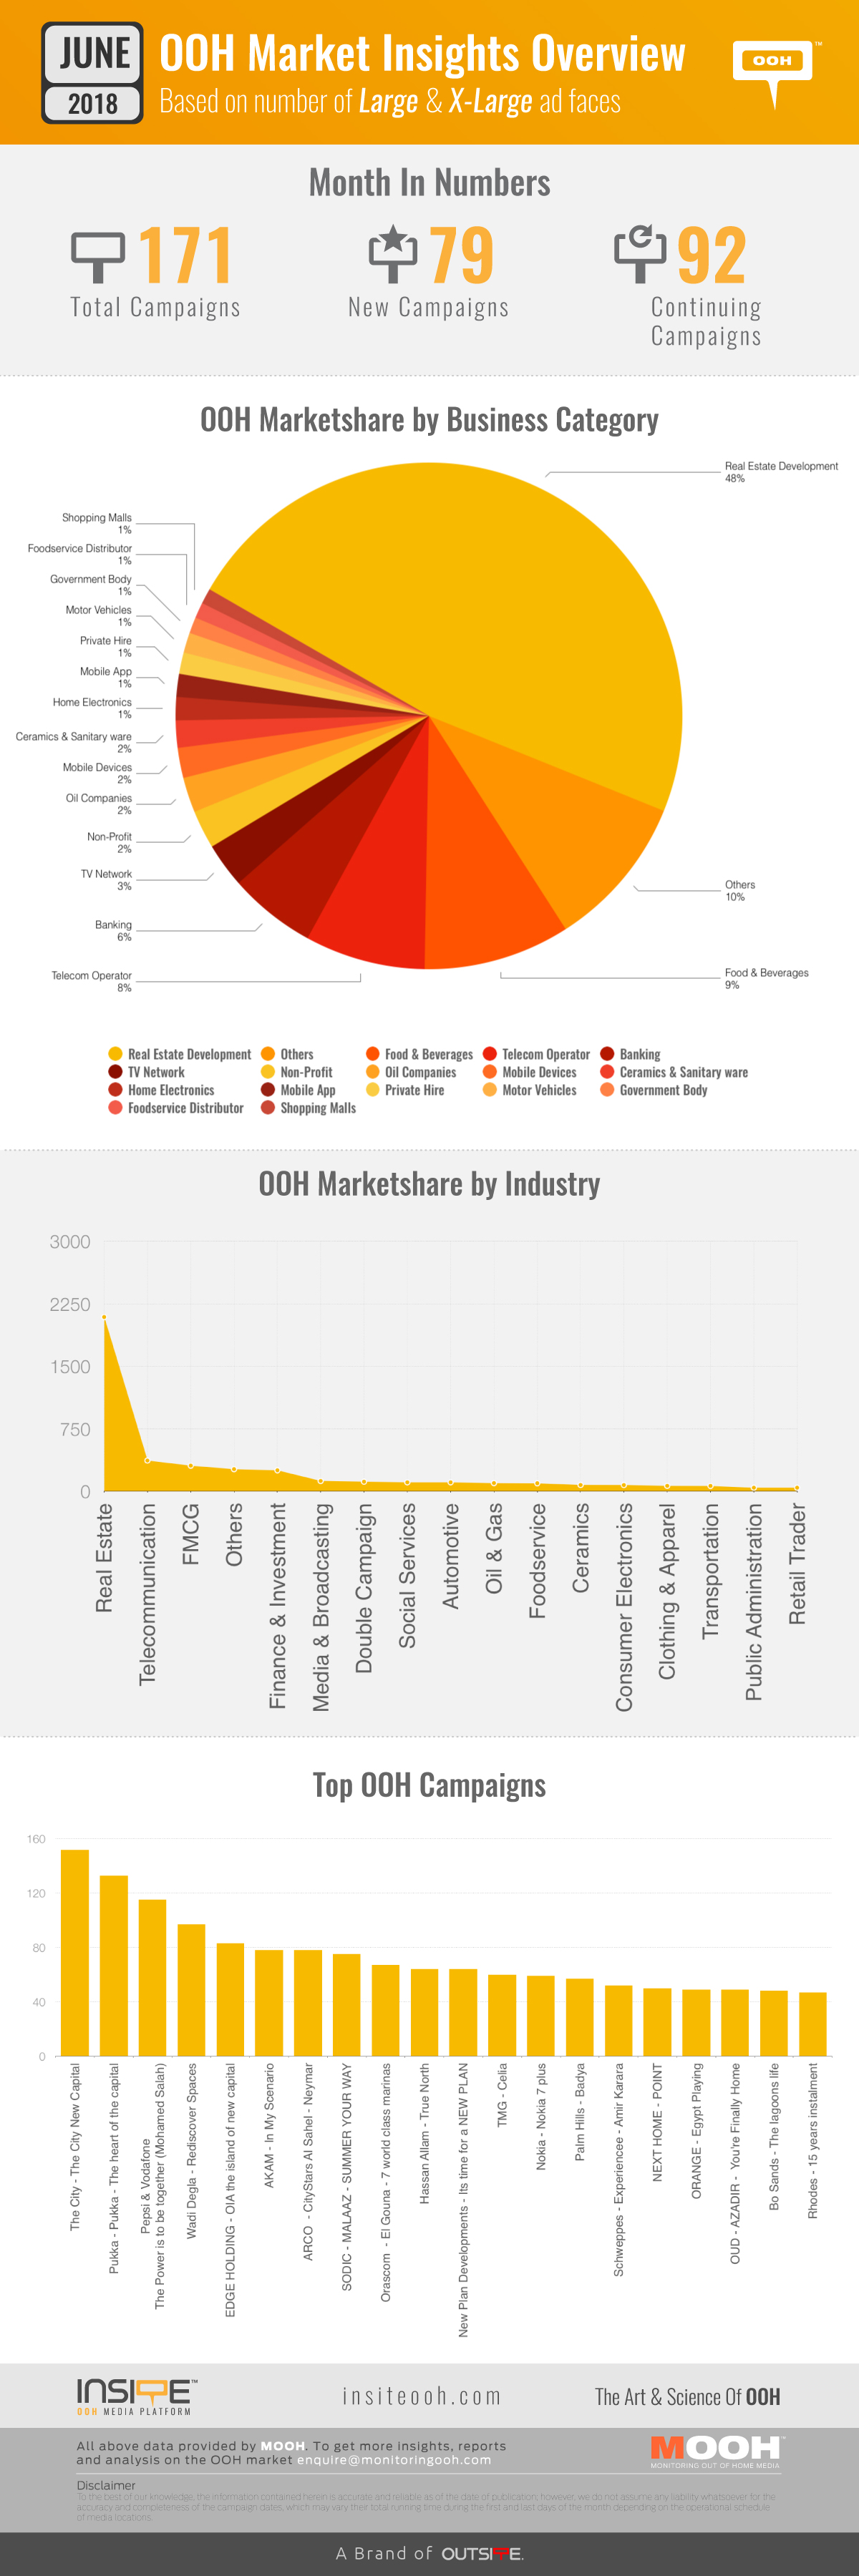 OOH MARKET INSIGHTS JUNE 2018-00